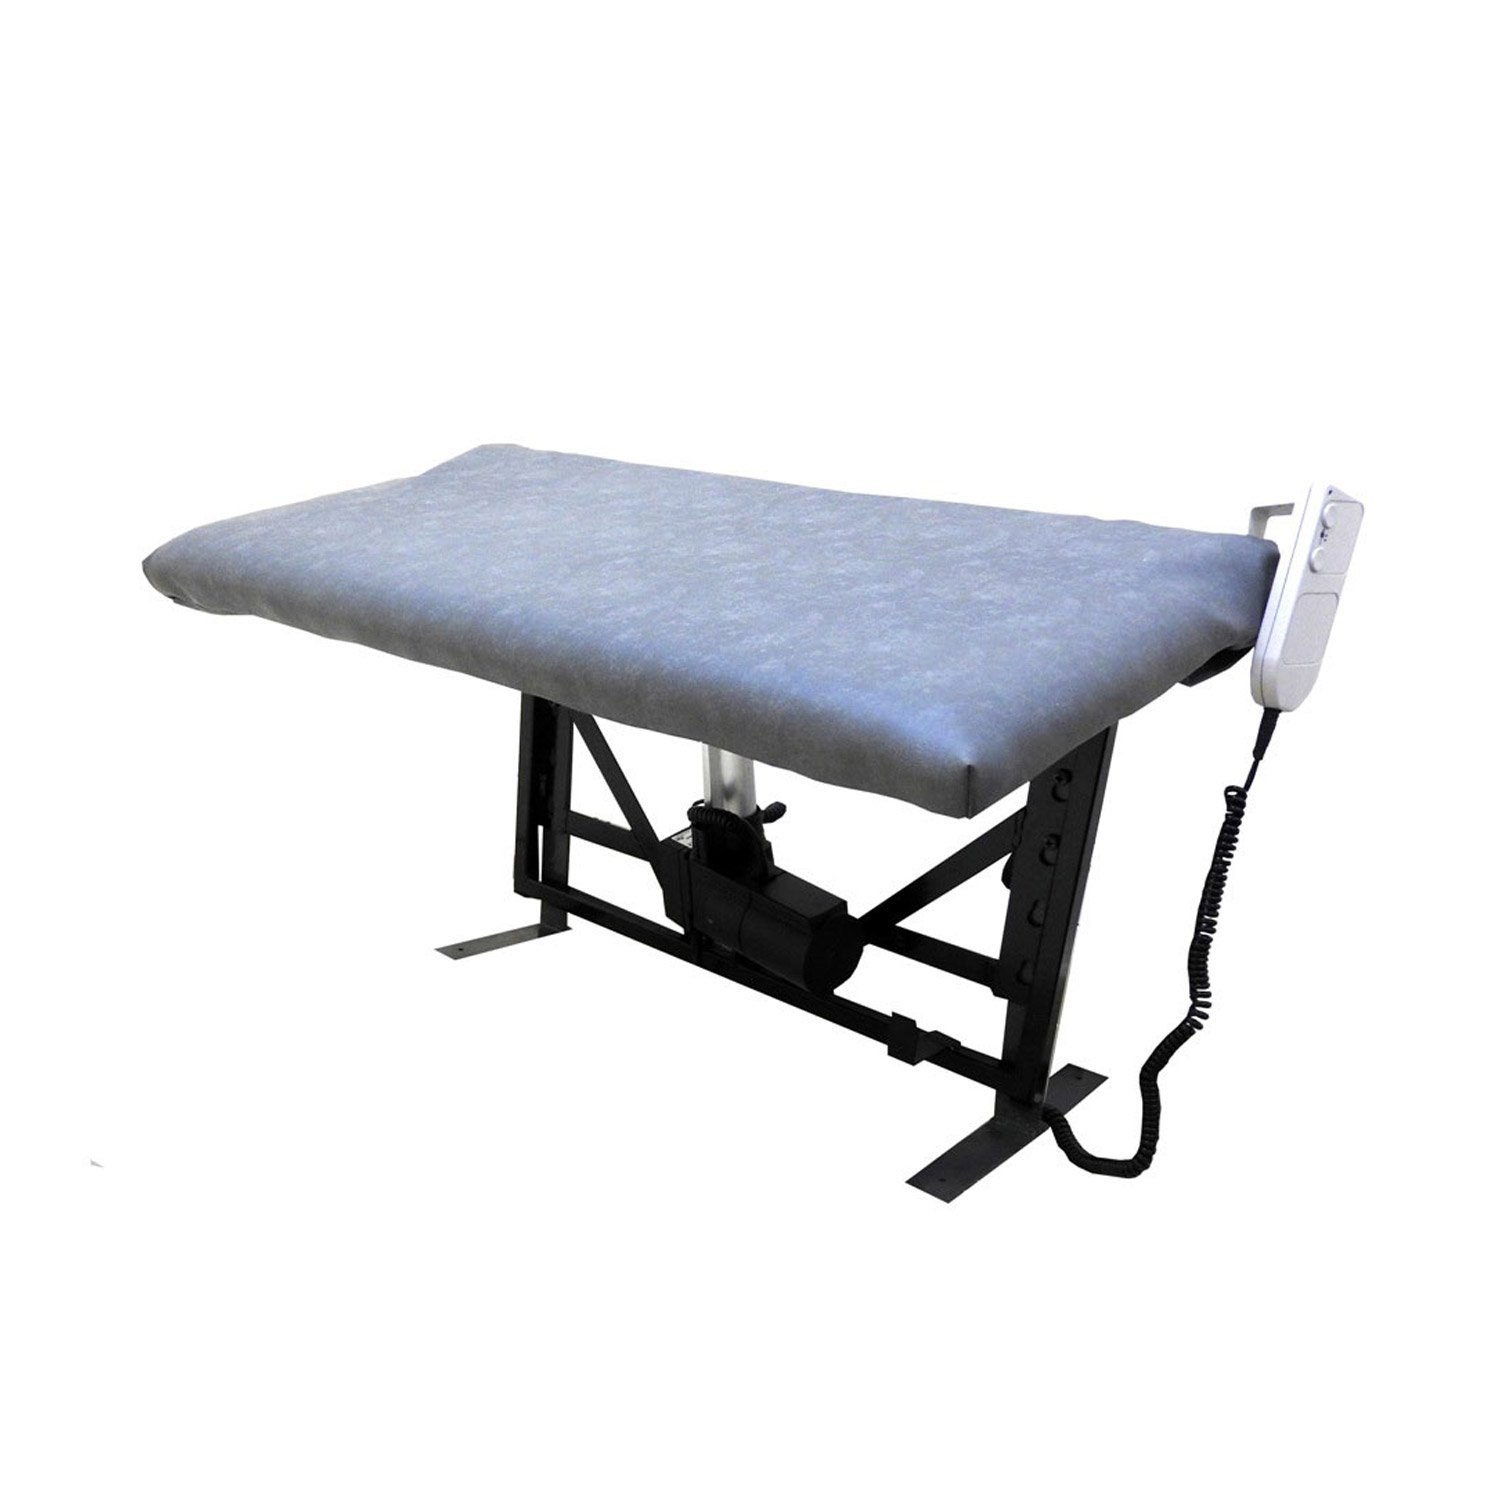 Mawson Mobile Leg Lifter Leg Lifters For Beds Centrobed